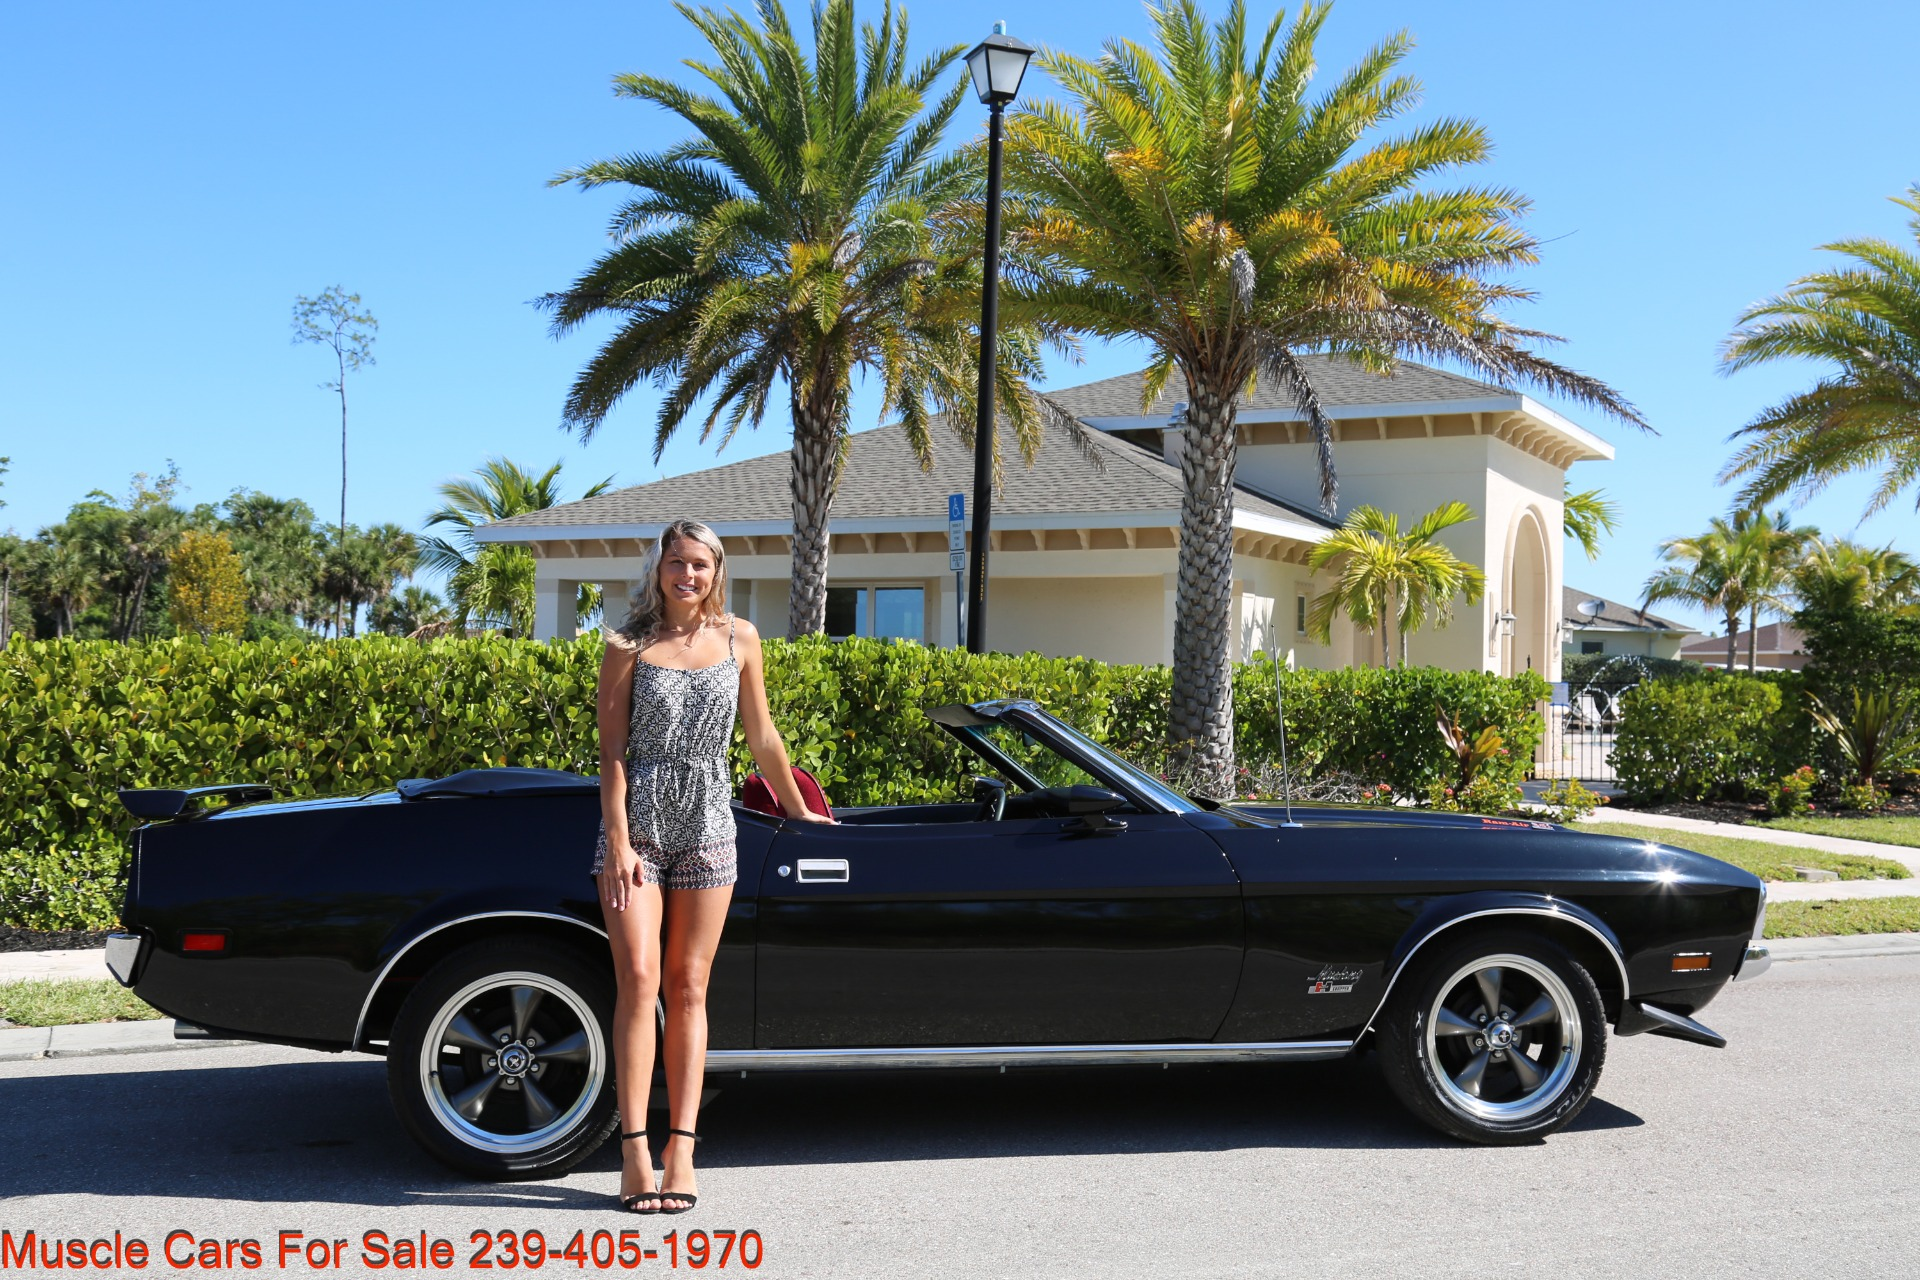 Used 1971 Ford Mustang M Code Convertible For Sale 21 000 Muscle Cars For Sale Inc Stock 2010